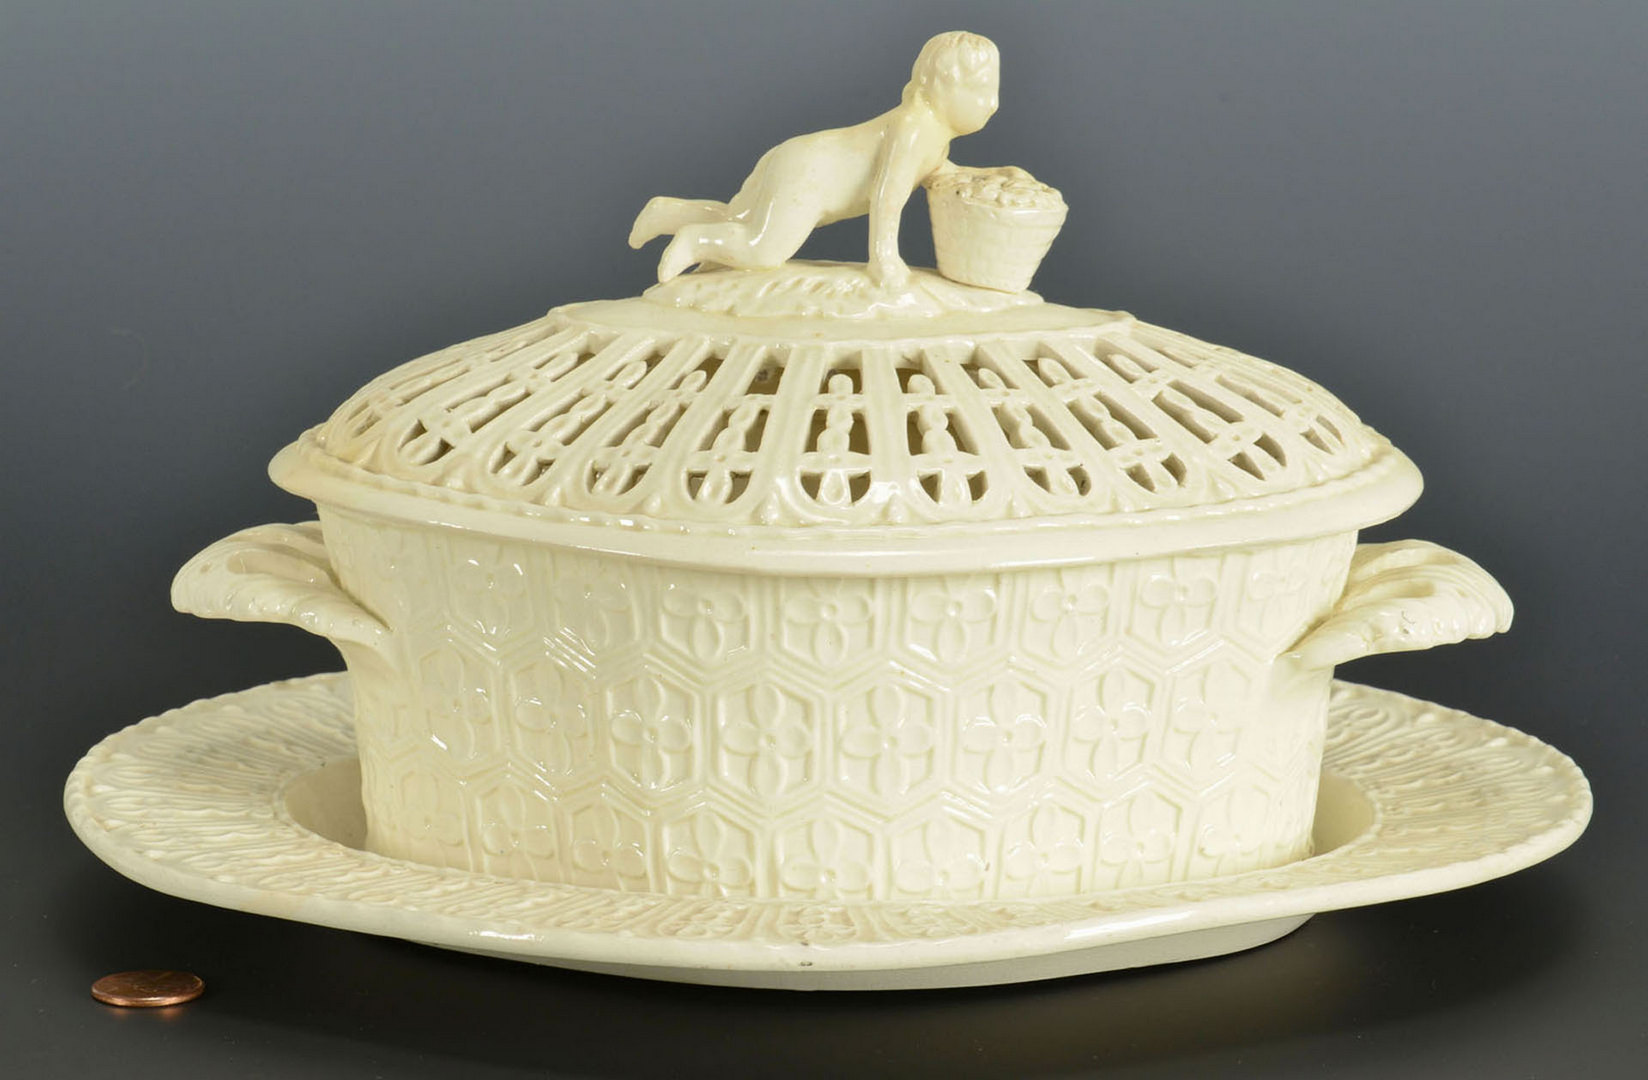 Lot 247: Creamware covered basket with figural knob